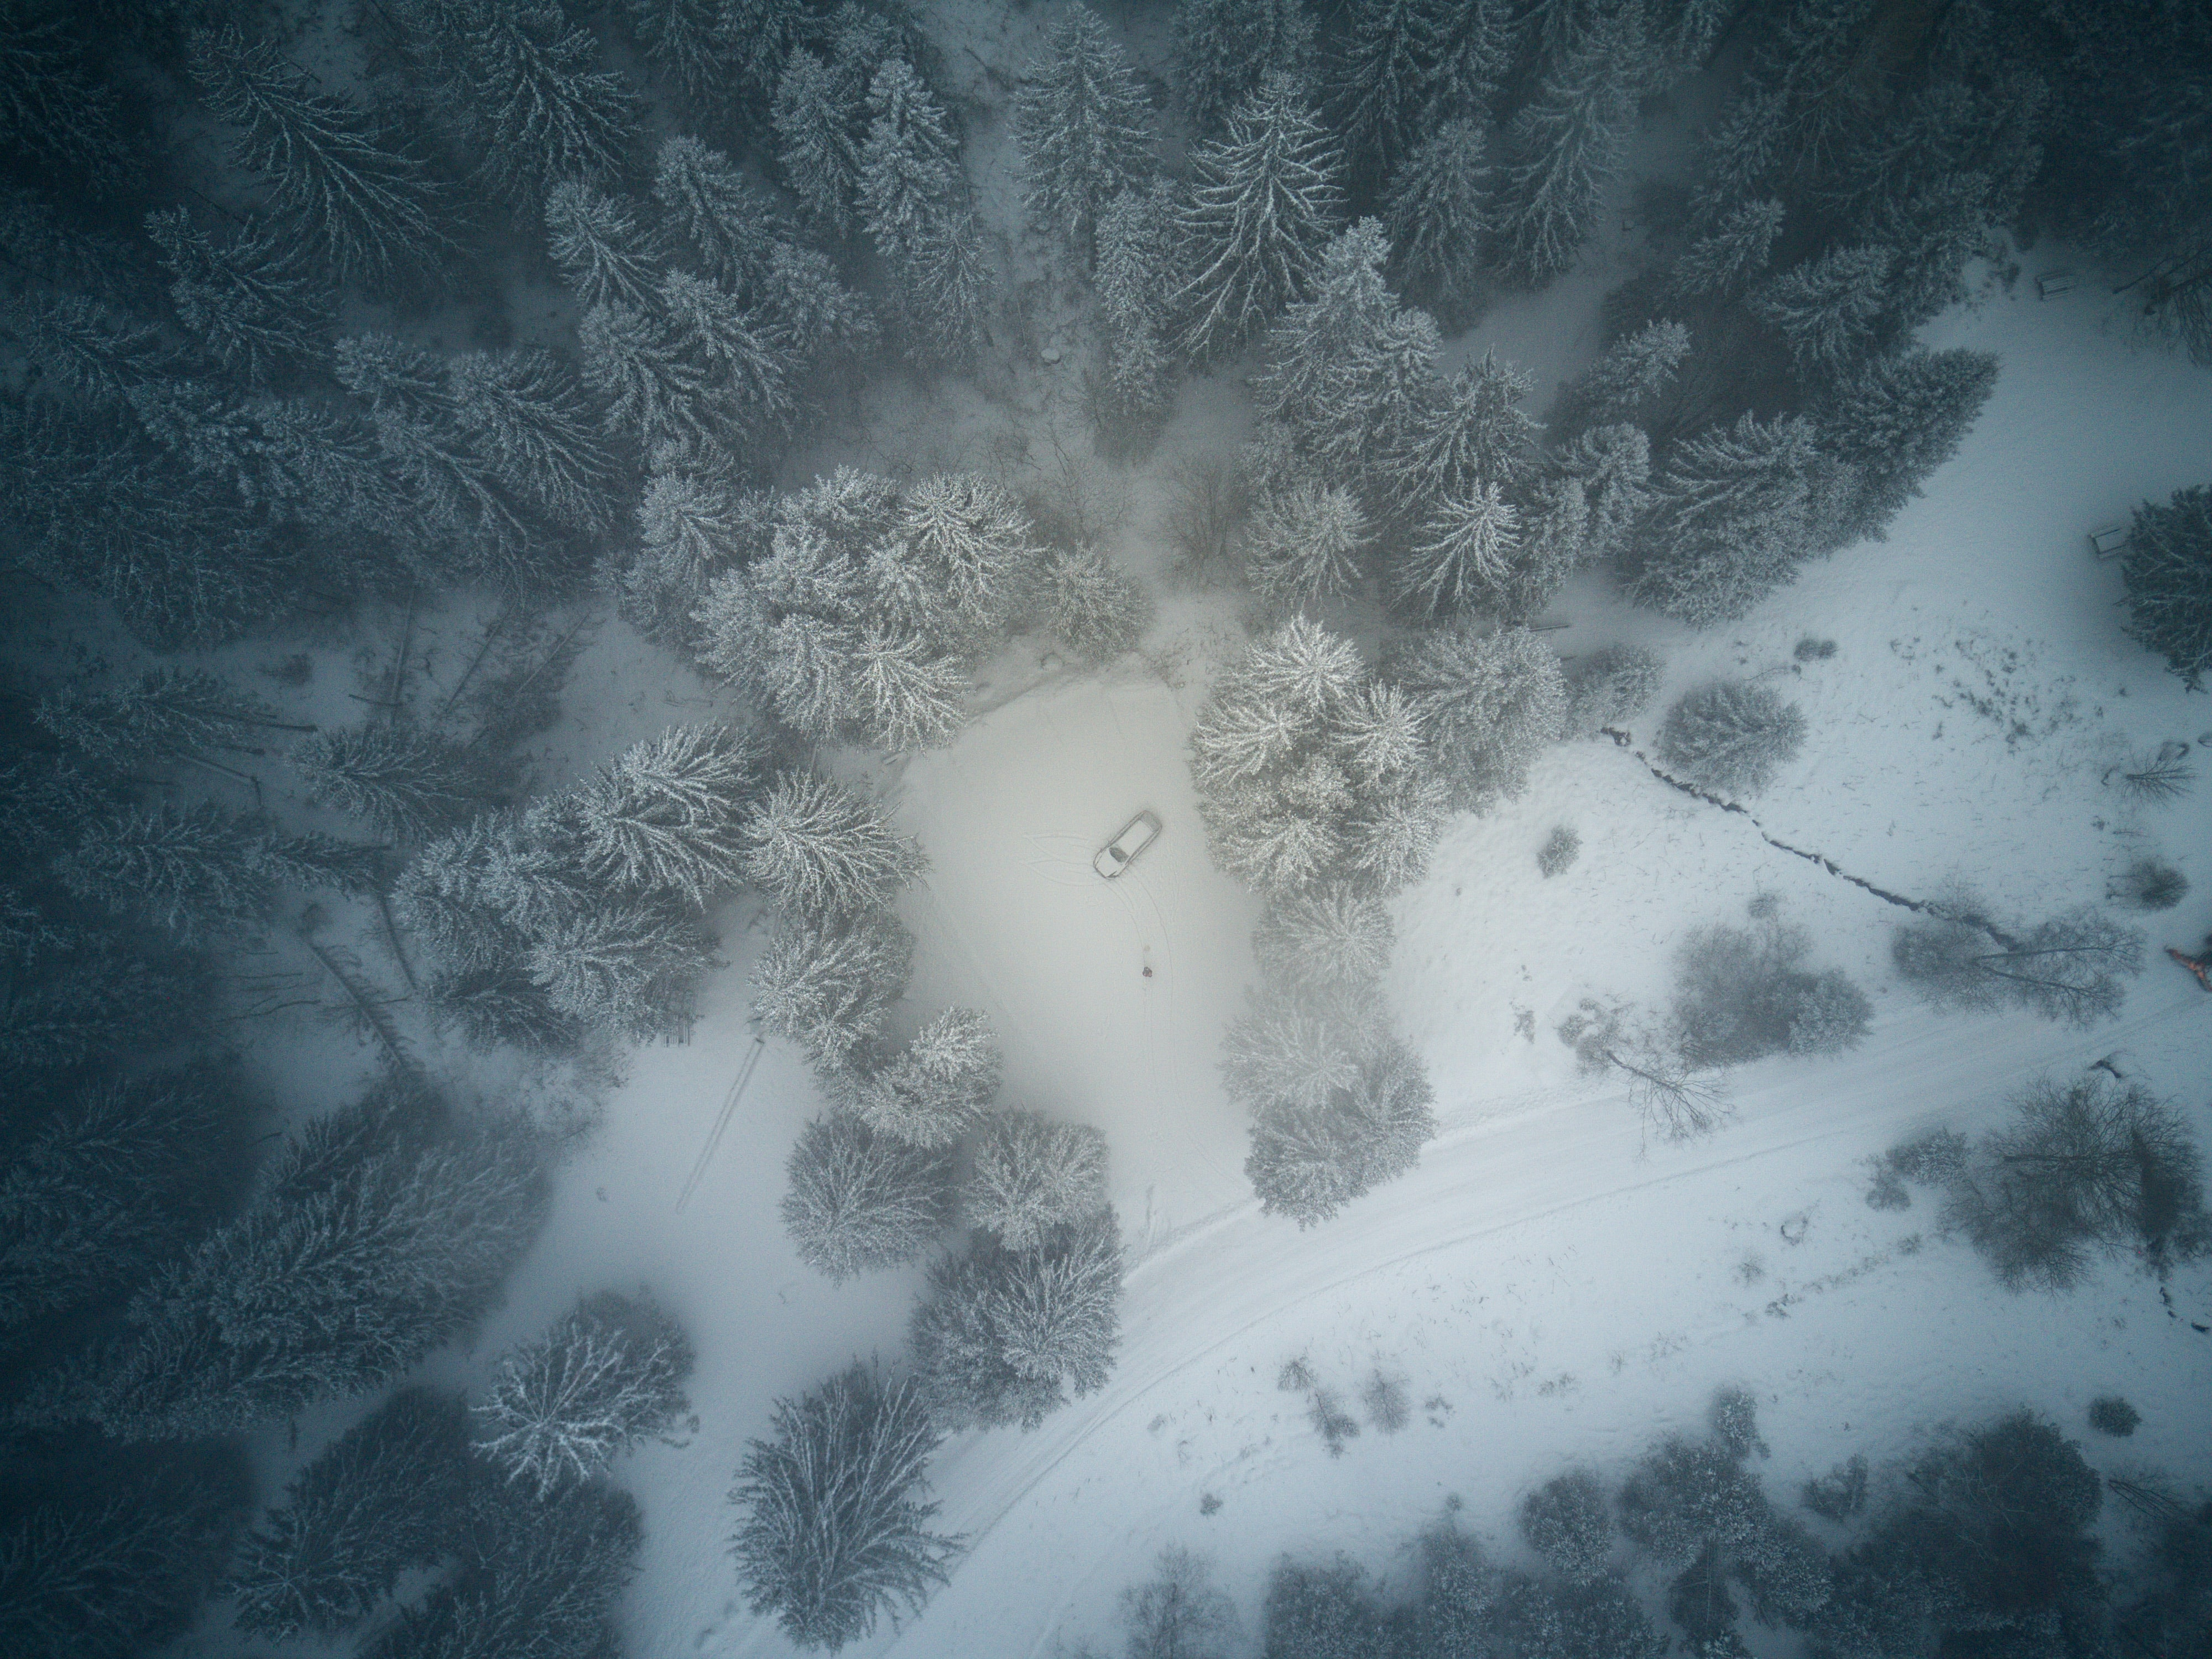 Drone's view of a snow covered, winter forest with a single car